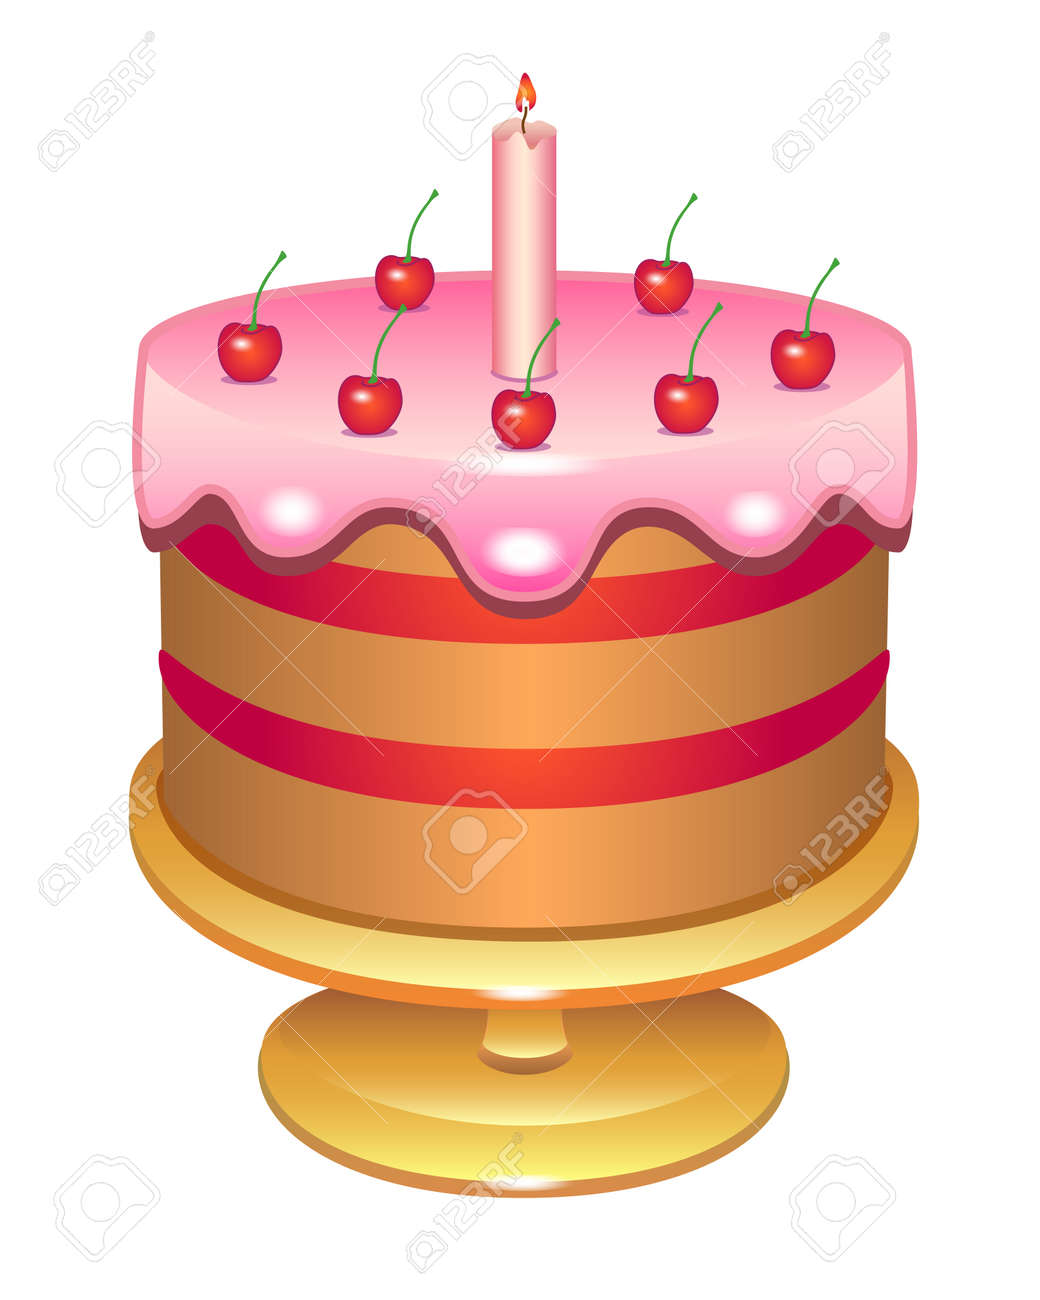 Cherry cake with a candle covered with icing. Birthday cake on a platter - vector full color illustration. Glazed cake decorated with cream cherries and candles - festive sweets. - 158454961